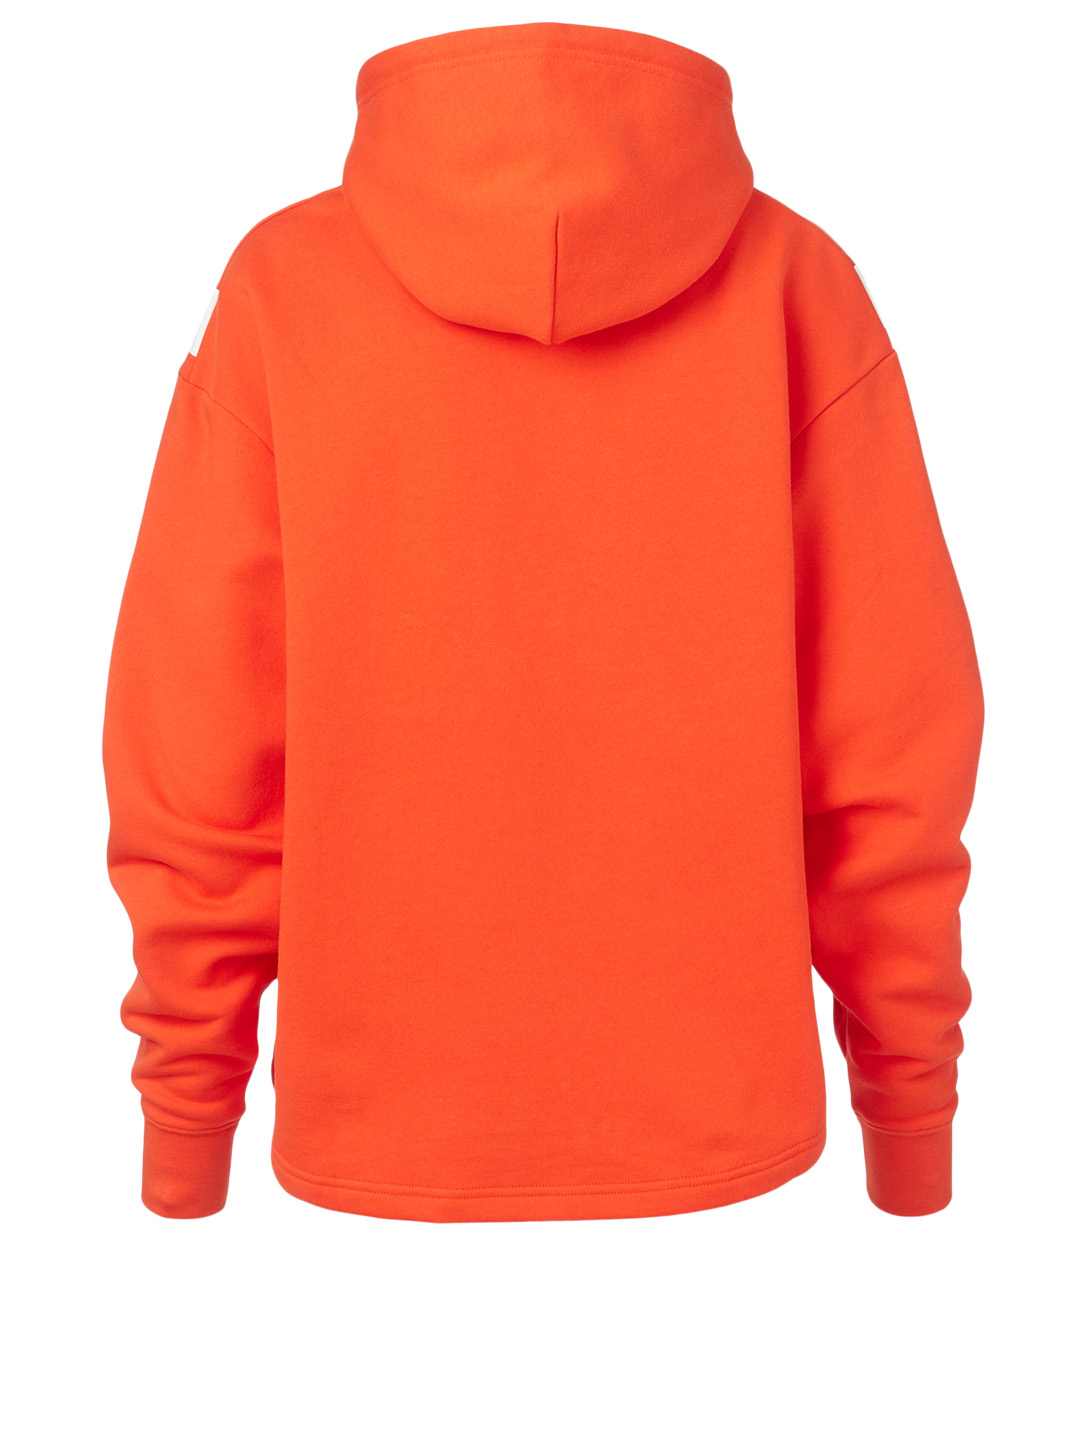 TORY SPORT French Terry Chevron Hoodie Women's Orange